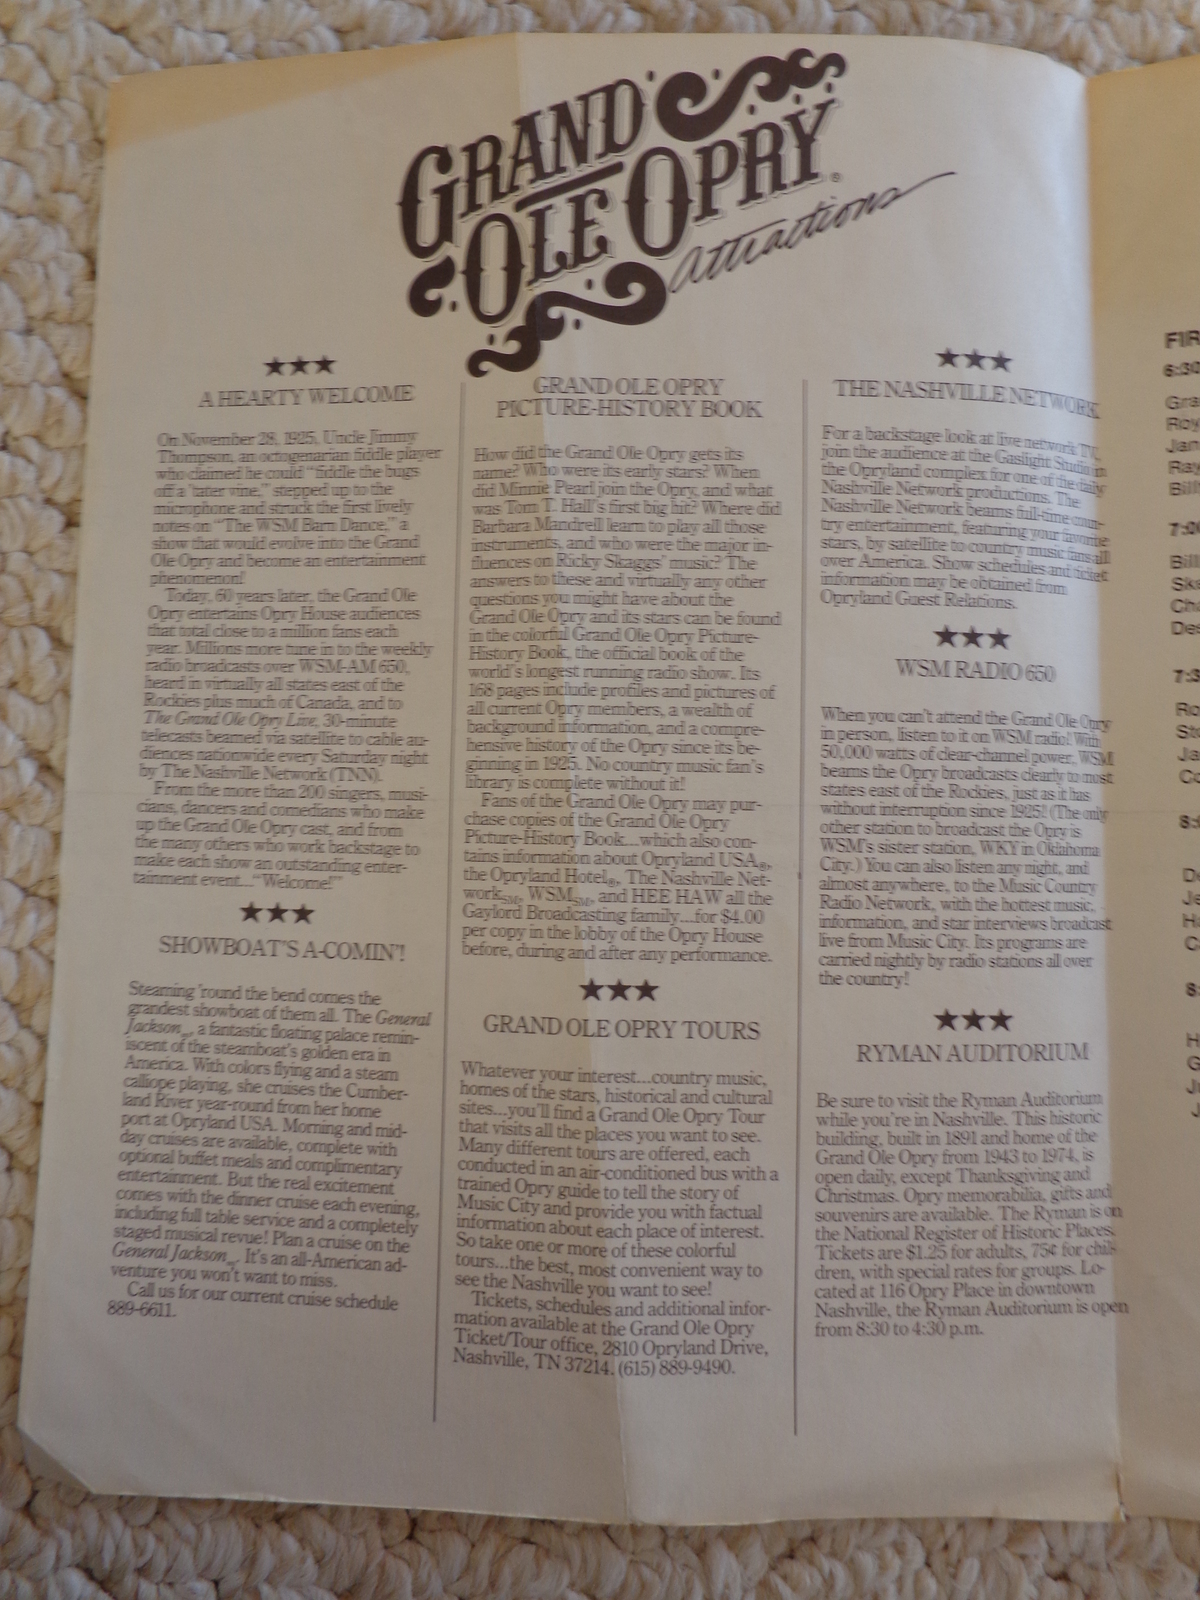 GRAND OLE OPRY COUNTRY 17TH INT'L MUSIC 1988 FAN FAIR PROGRAM (#1790)